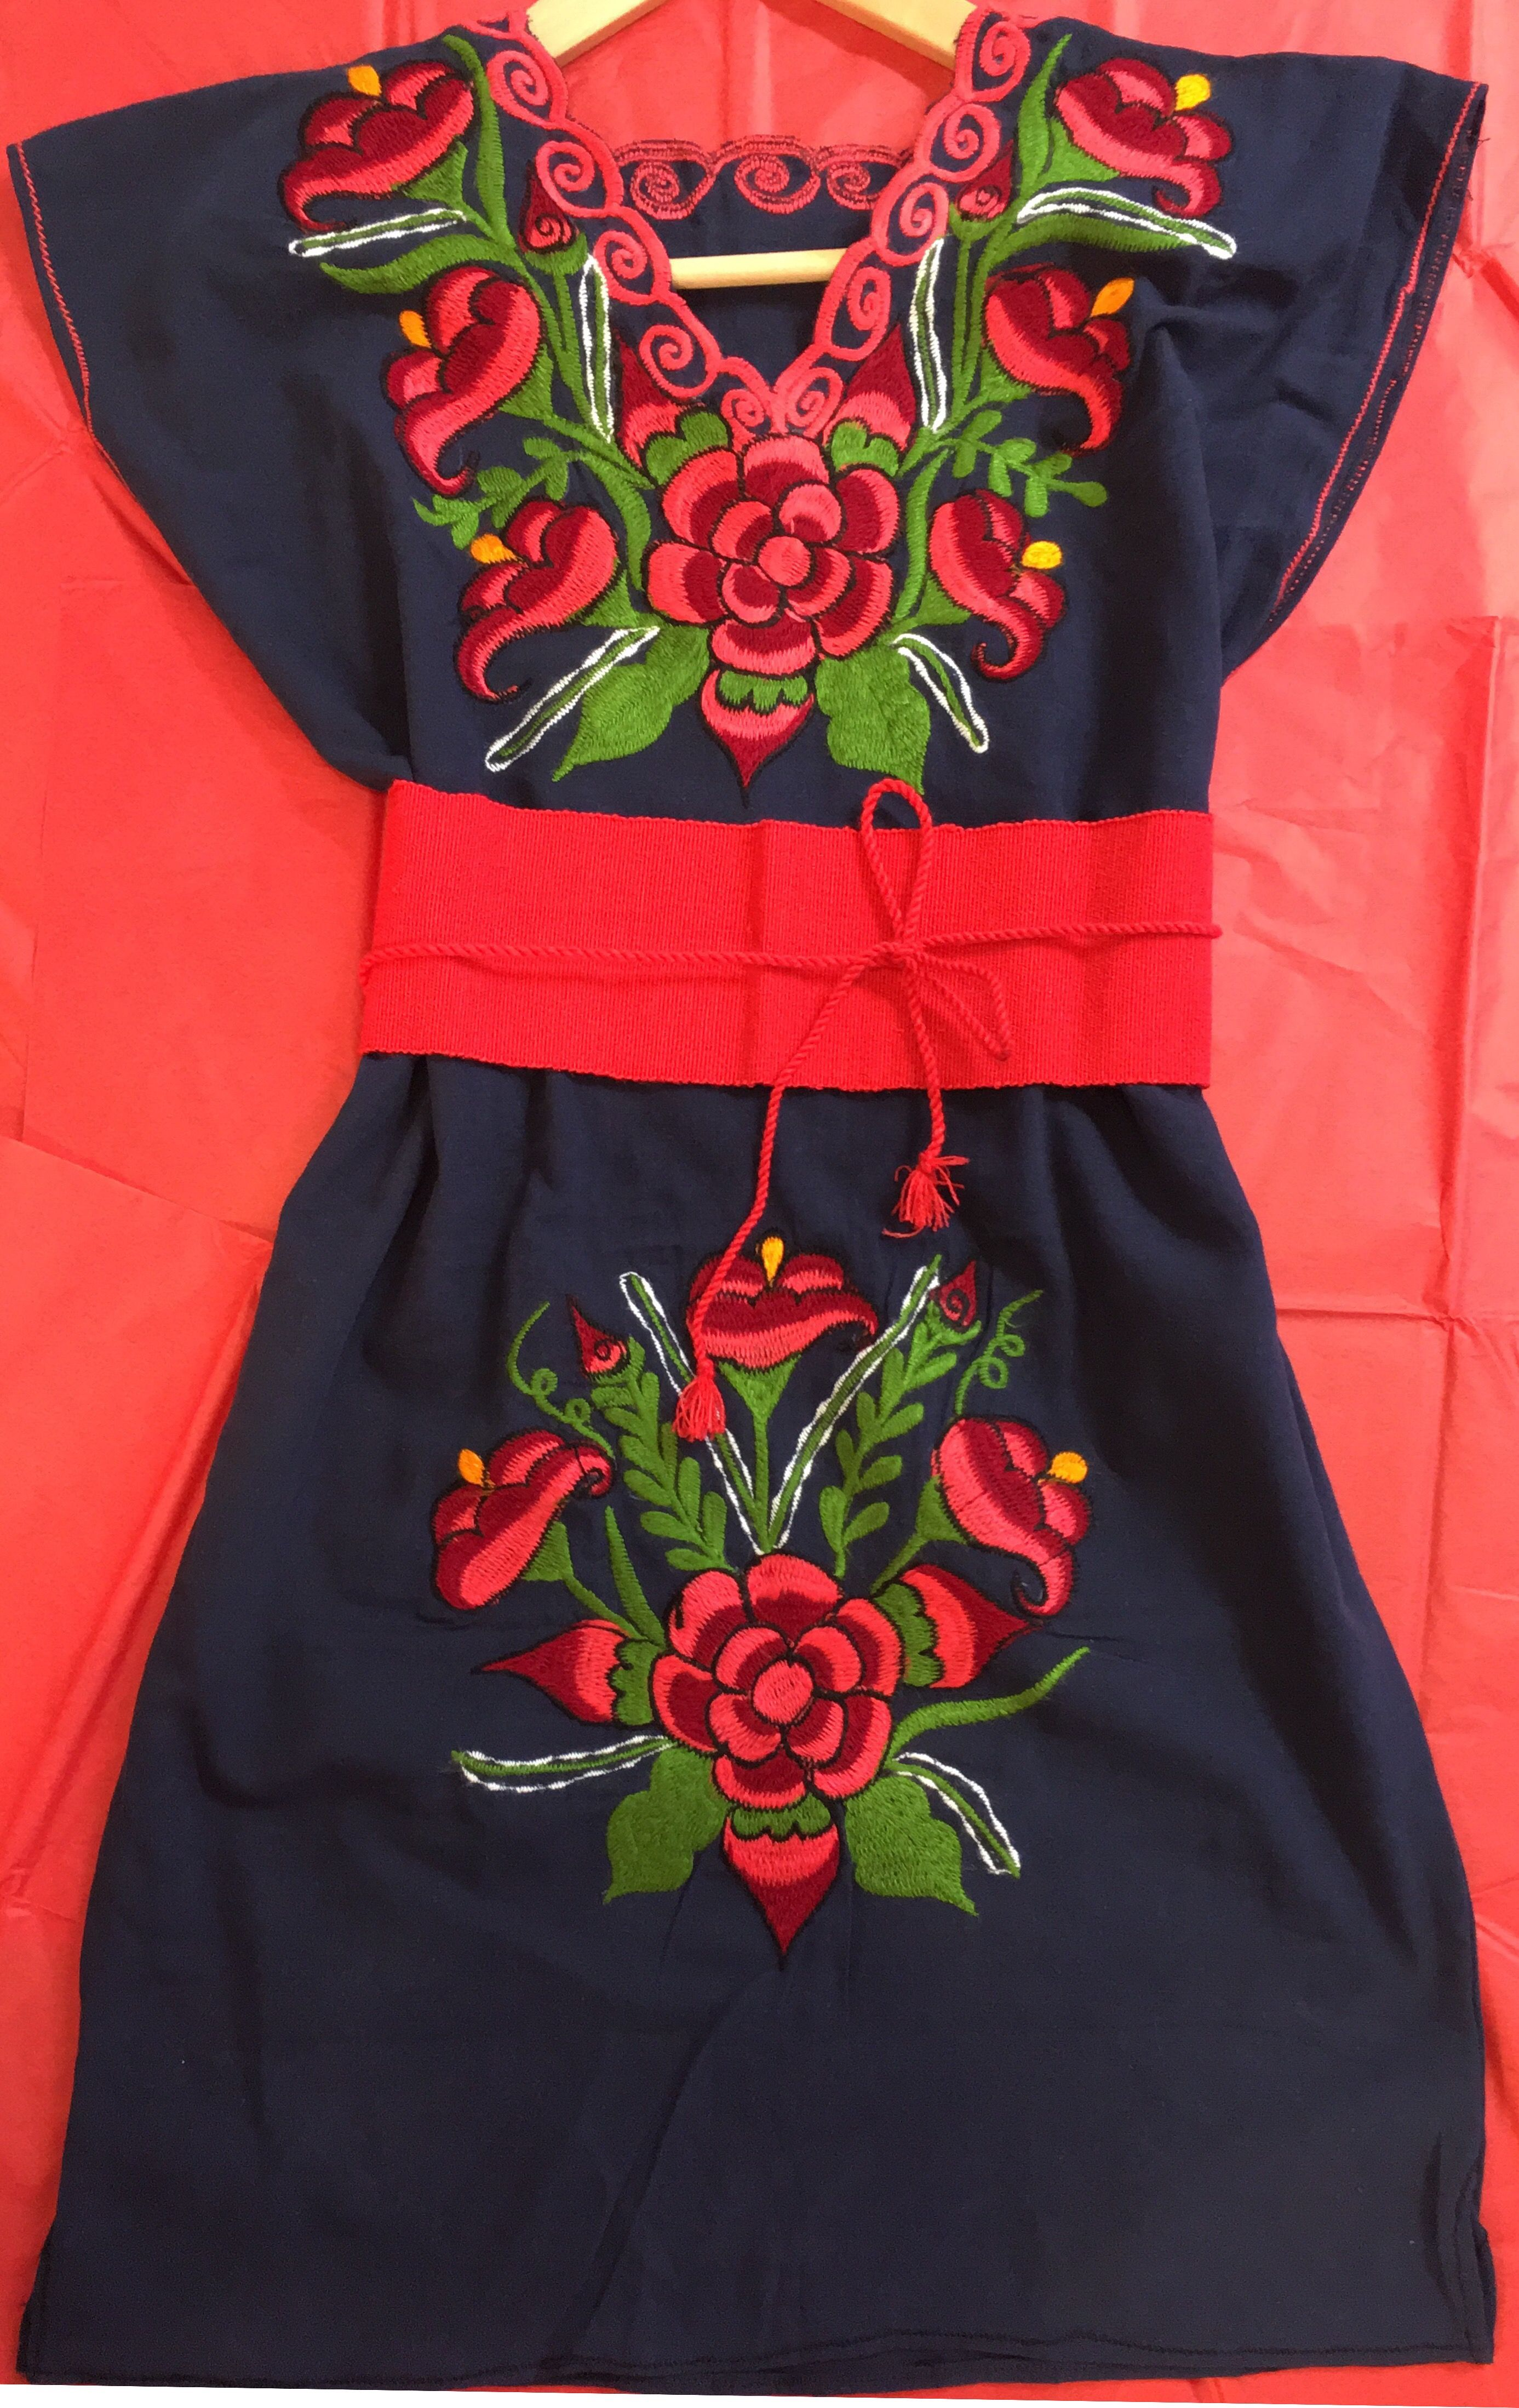 59360535b This Traditional Mexican dresses with beautiful hand-embroidered colorful  patterns was made by skilled artisans in Zinacatan, Chiapas a very  traditional ...